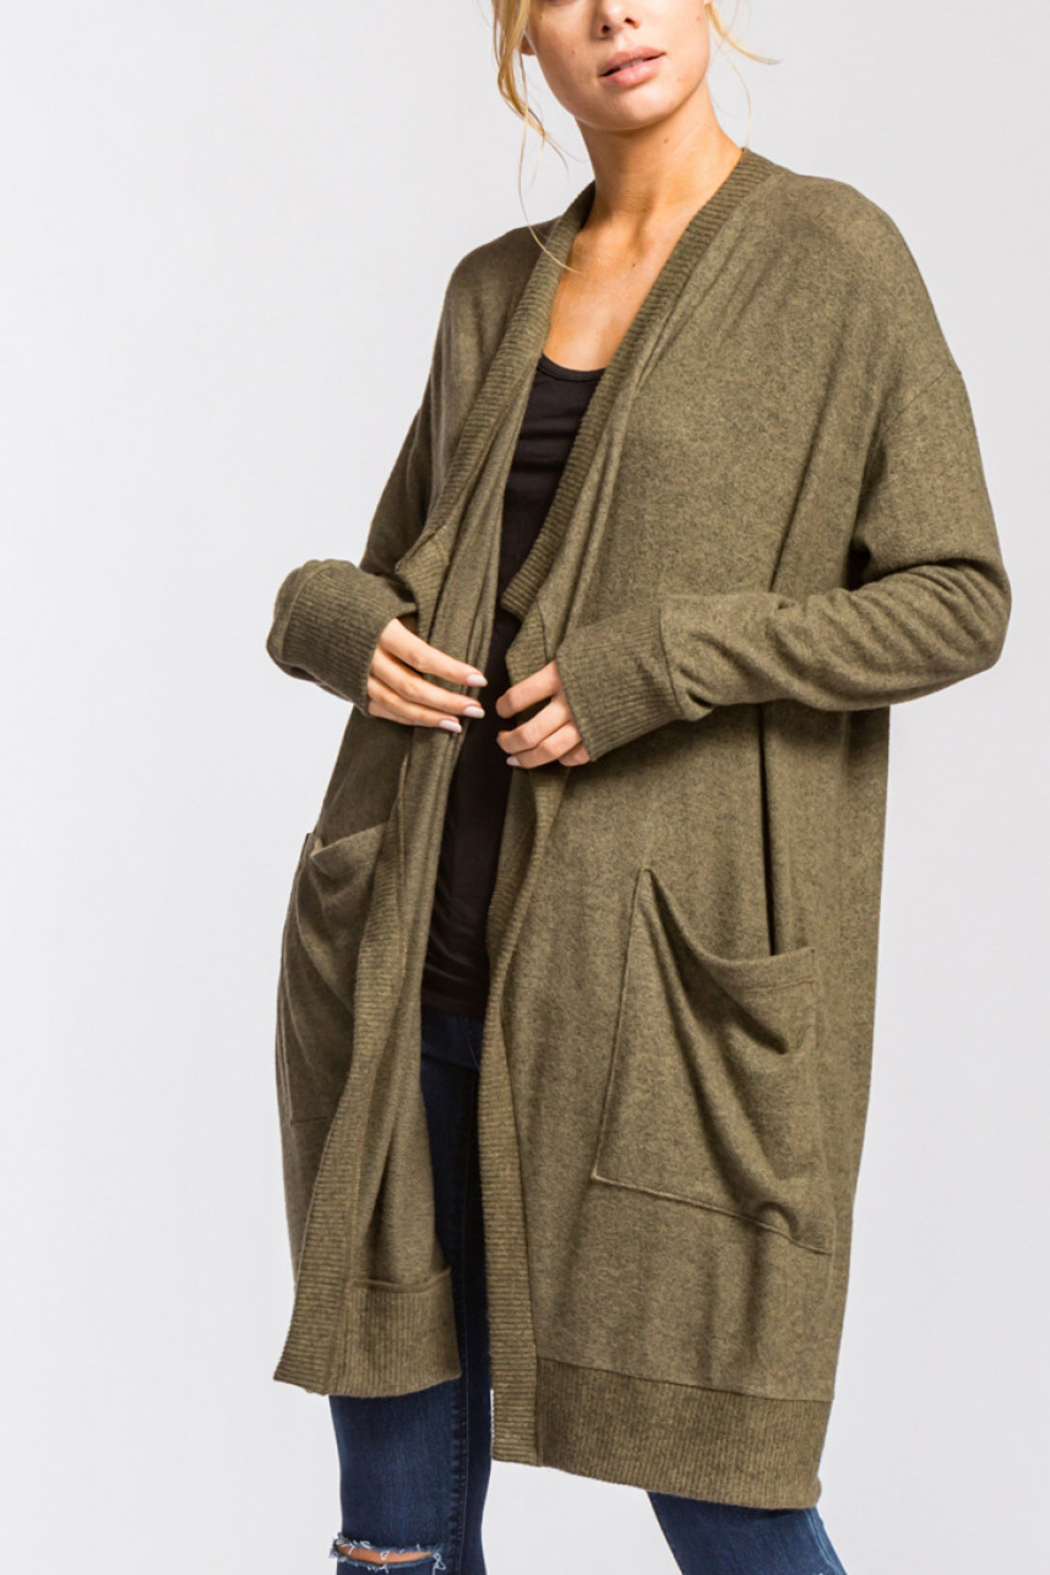 Lyn -Maree's Brushed Cardigan Intermingle Cardi - Front Cropped Image